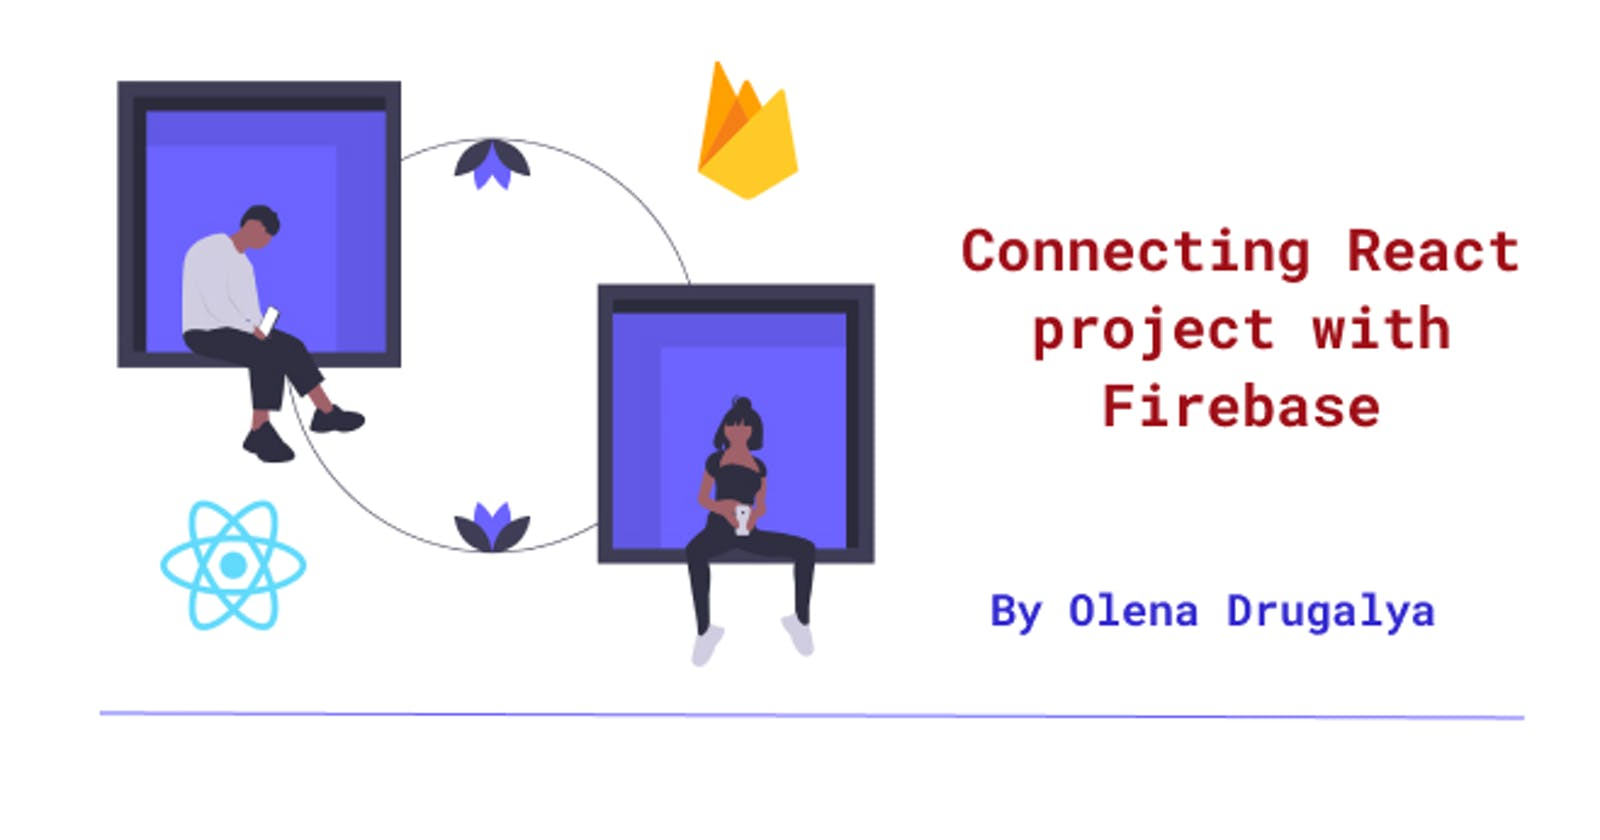 Connecting React project with Firebase